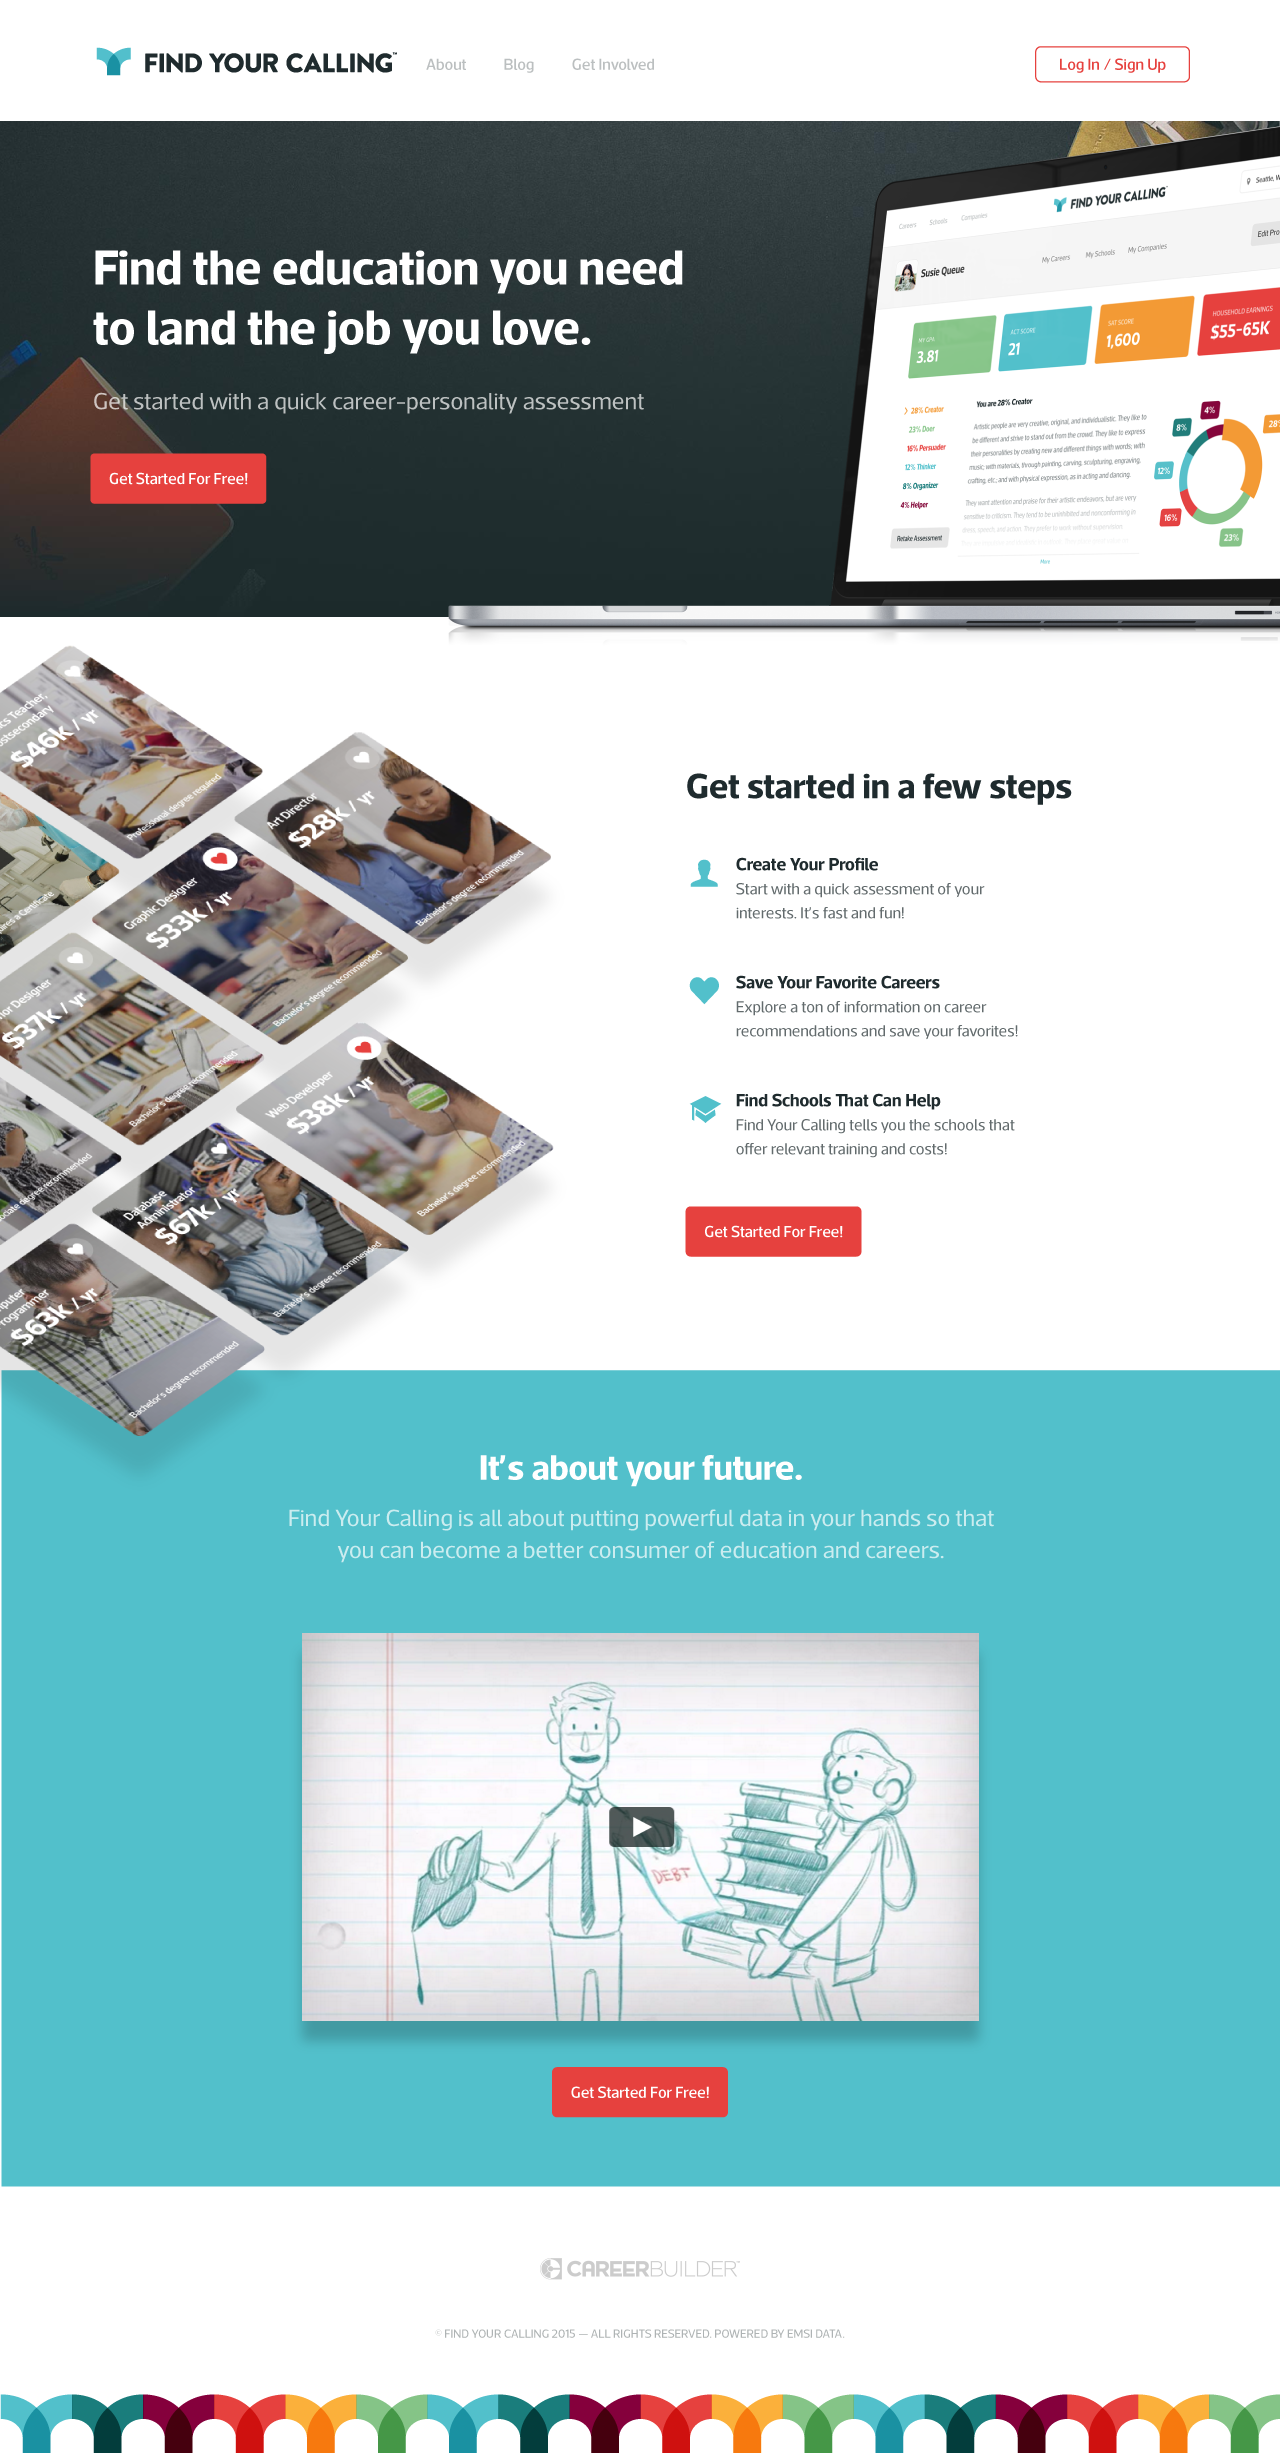 Fyc landing page